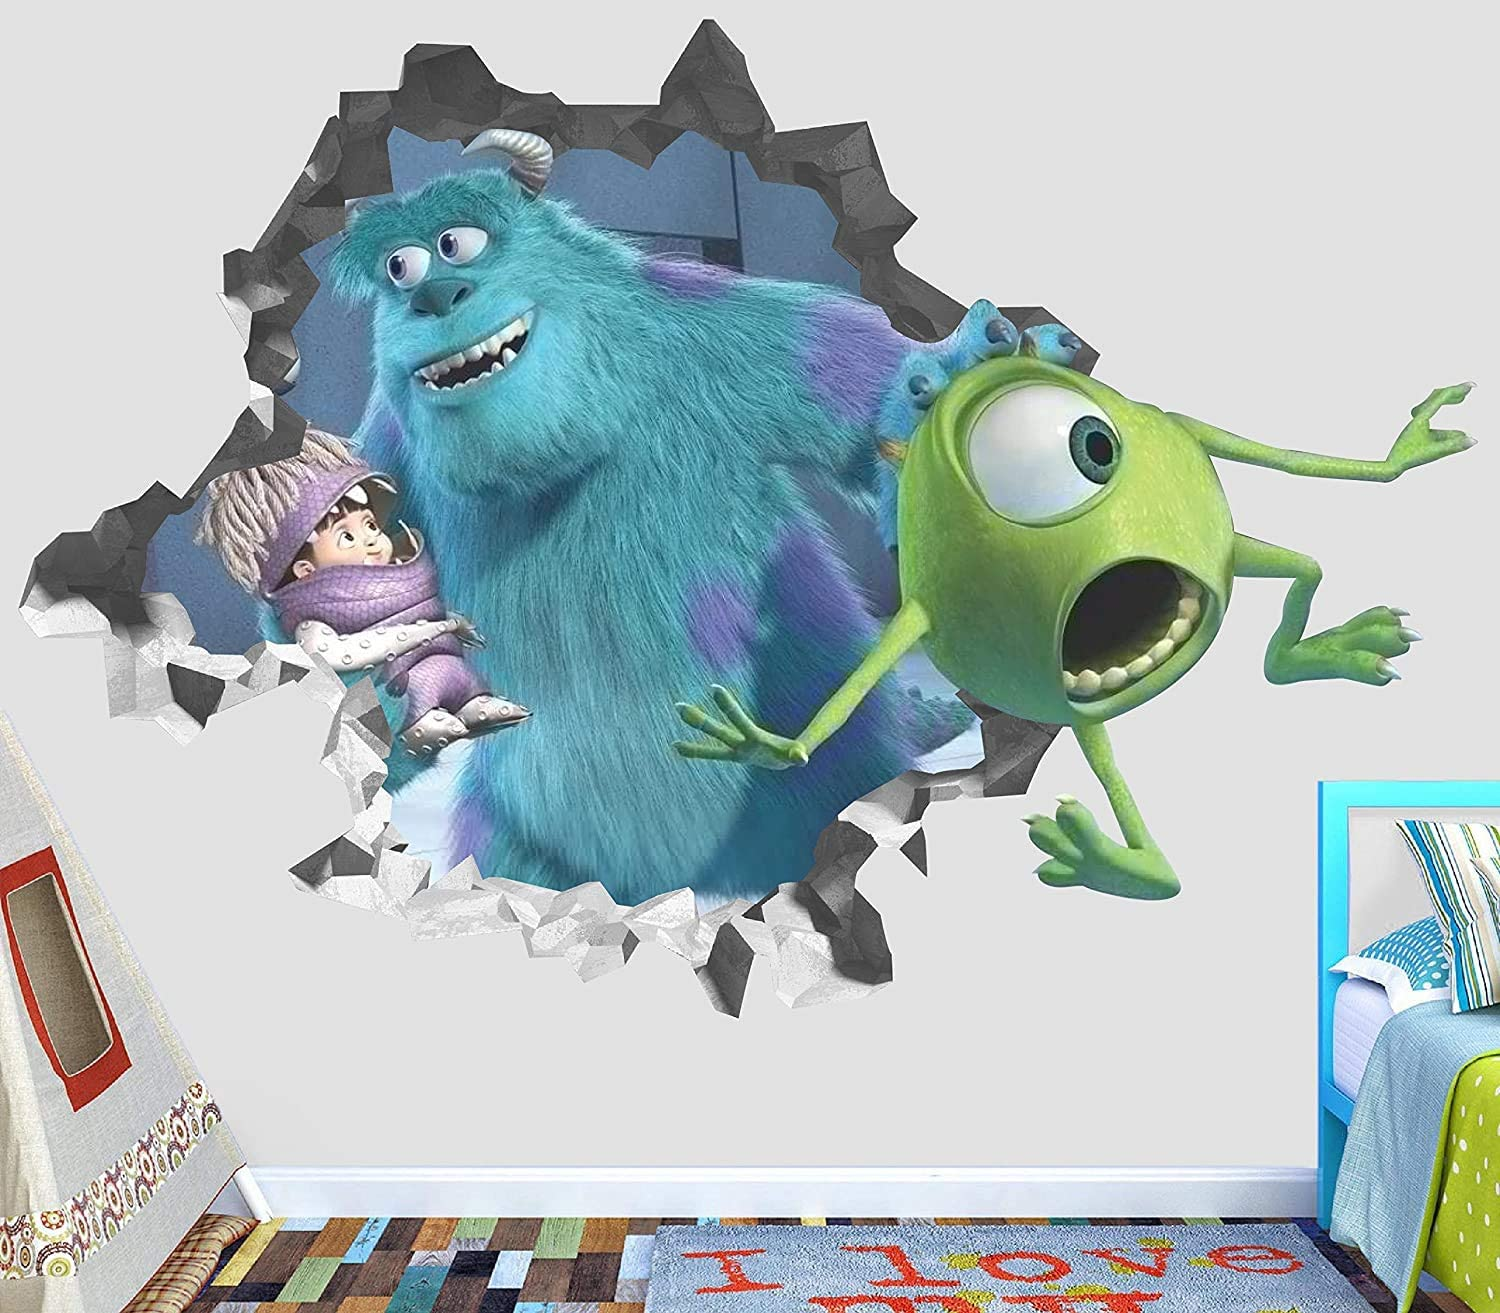 "Monster Inc Mike Wazowski James P Wall Decal Smashed 3D Sticker Vinyl Decor Mural Movie Kids - Broken Wall - 3D Designs - OP411 (Small (Wide 22"" x 16"" Height))"